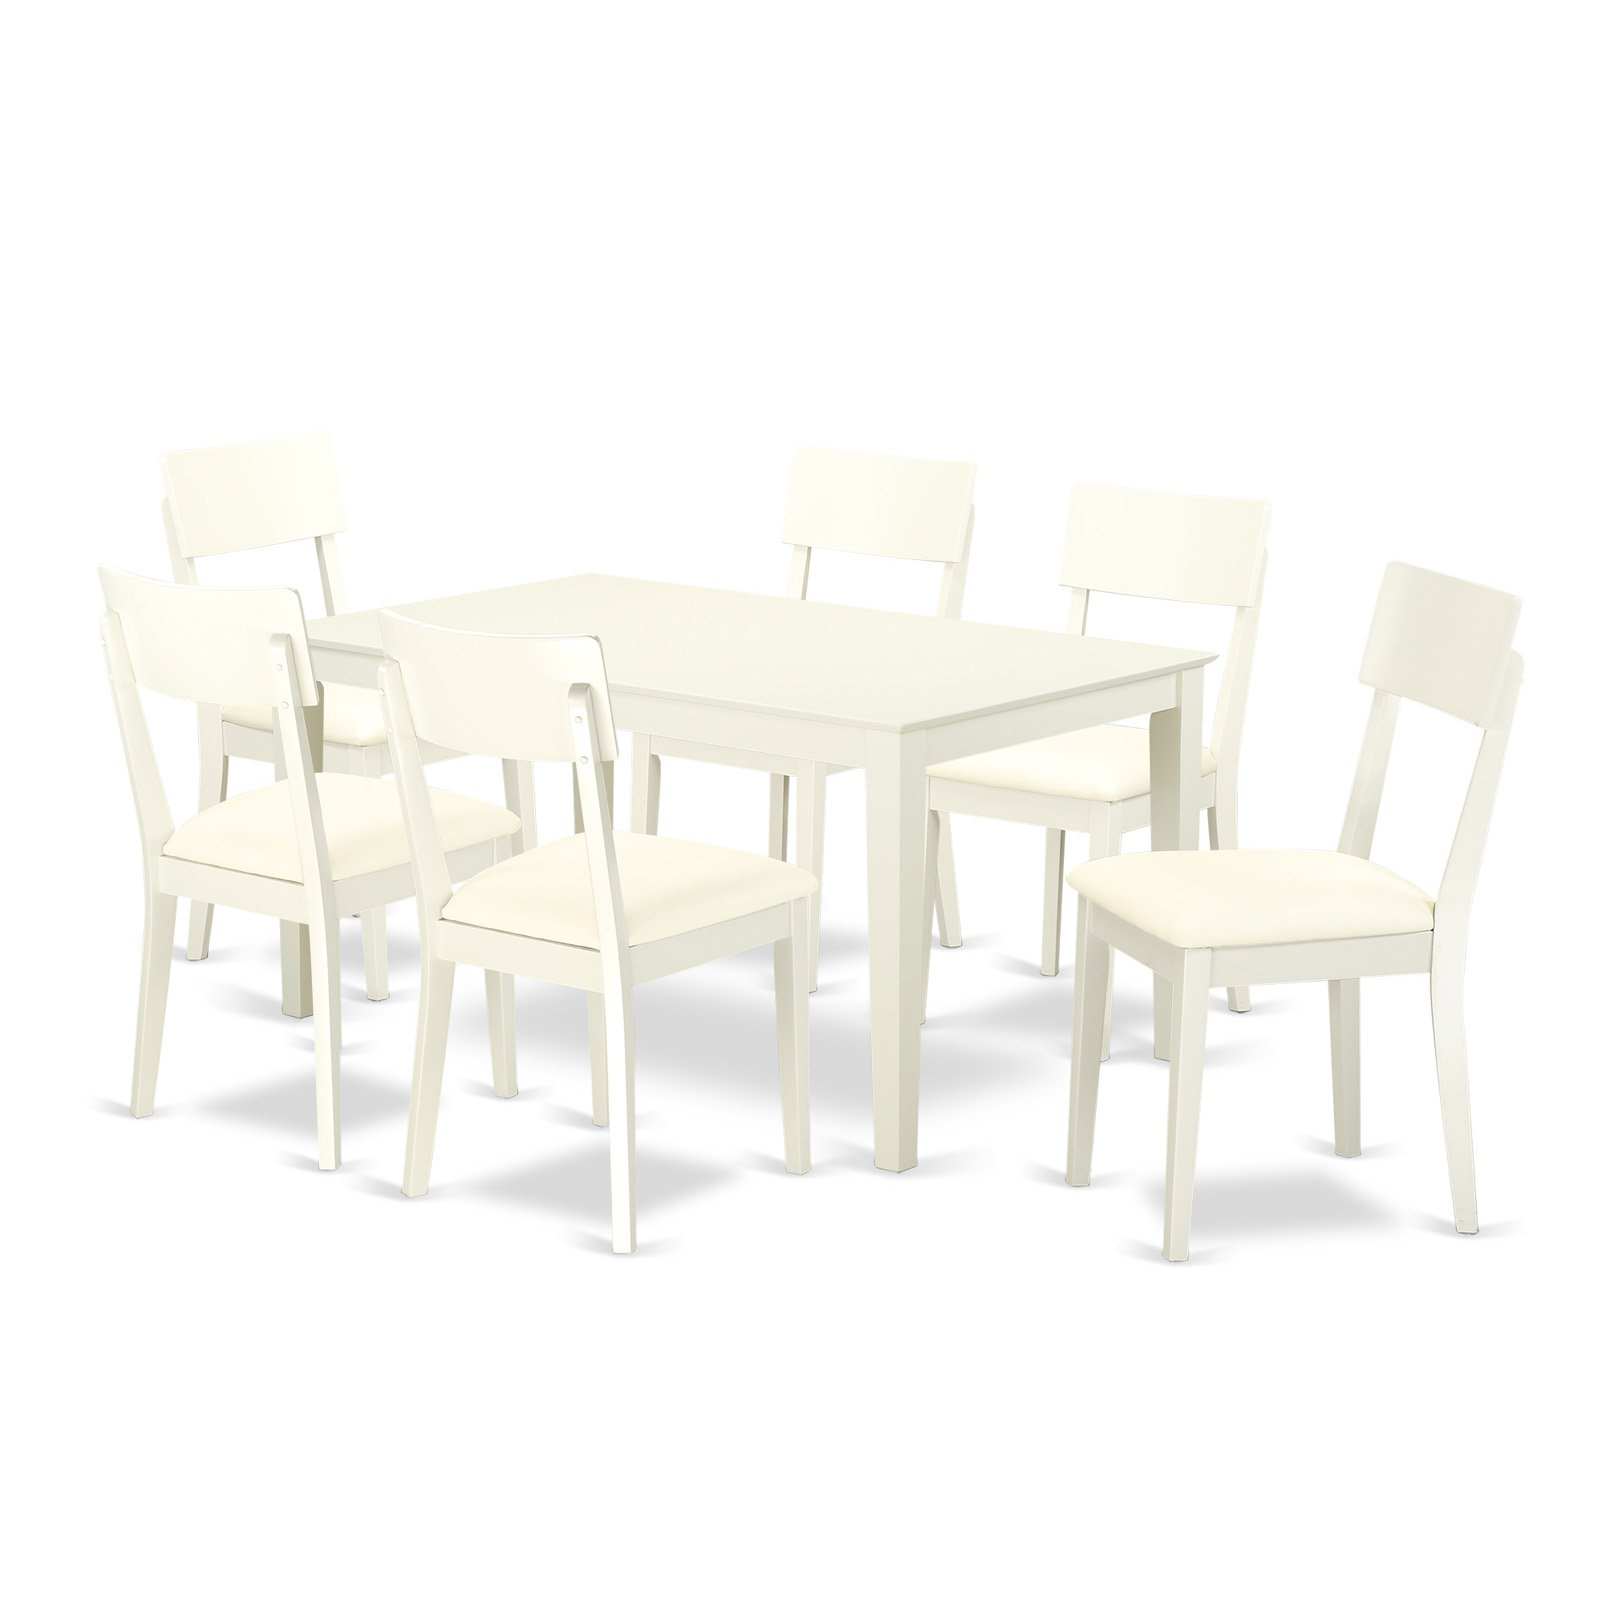 Smyrna 3 Piece Dining Sets For Well Known East West Furniture Capri Caad7 Seven Piece Dining Table Set (View 10 of 20)